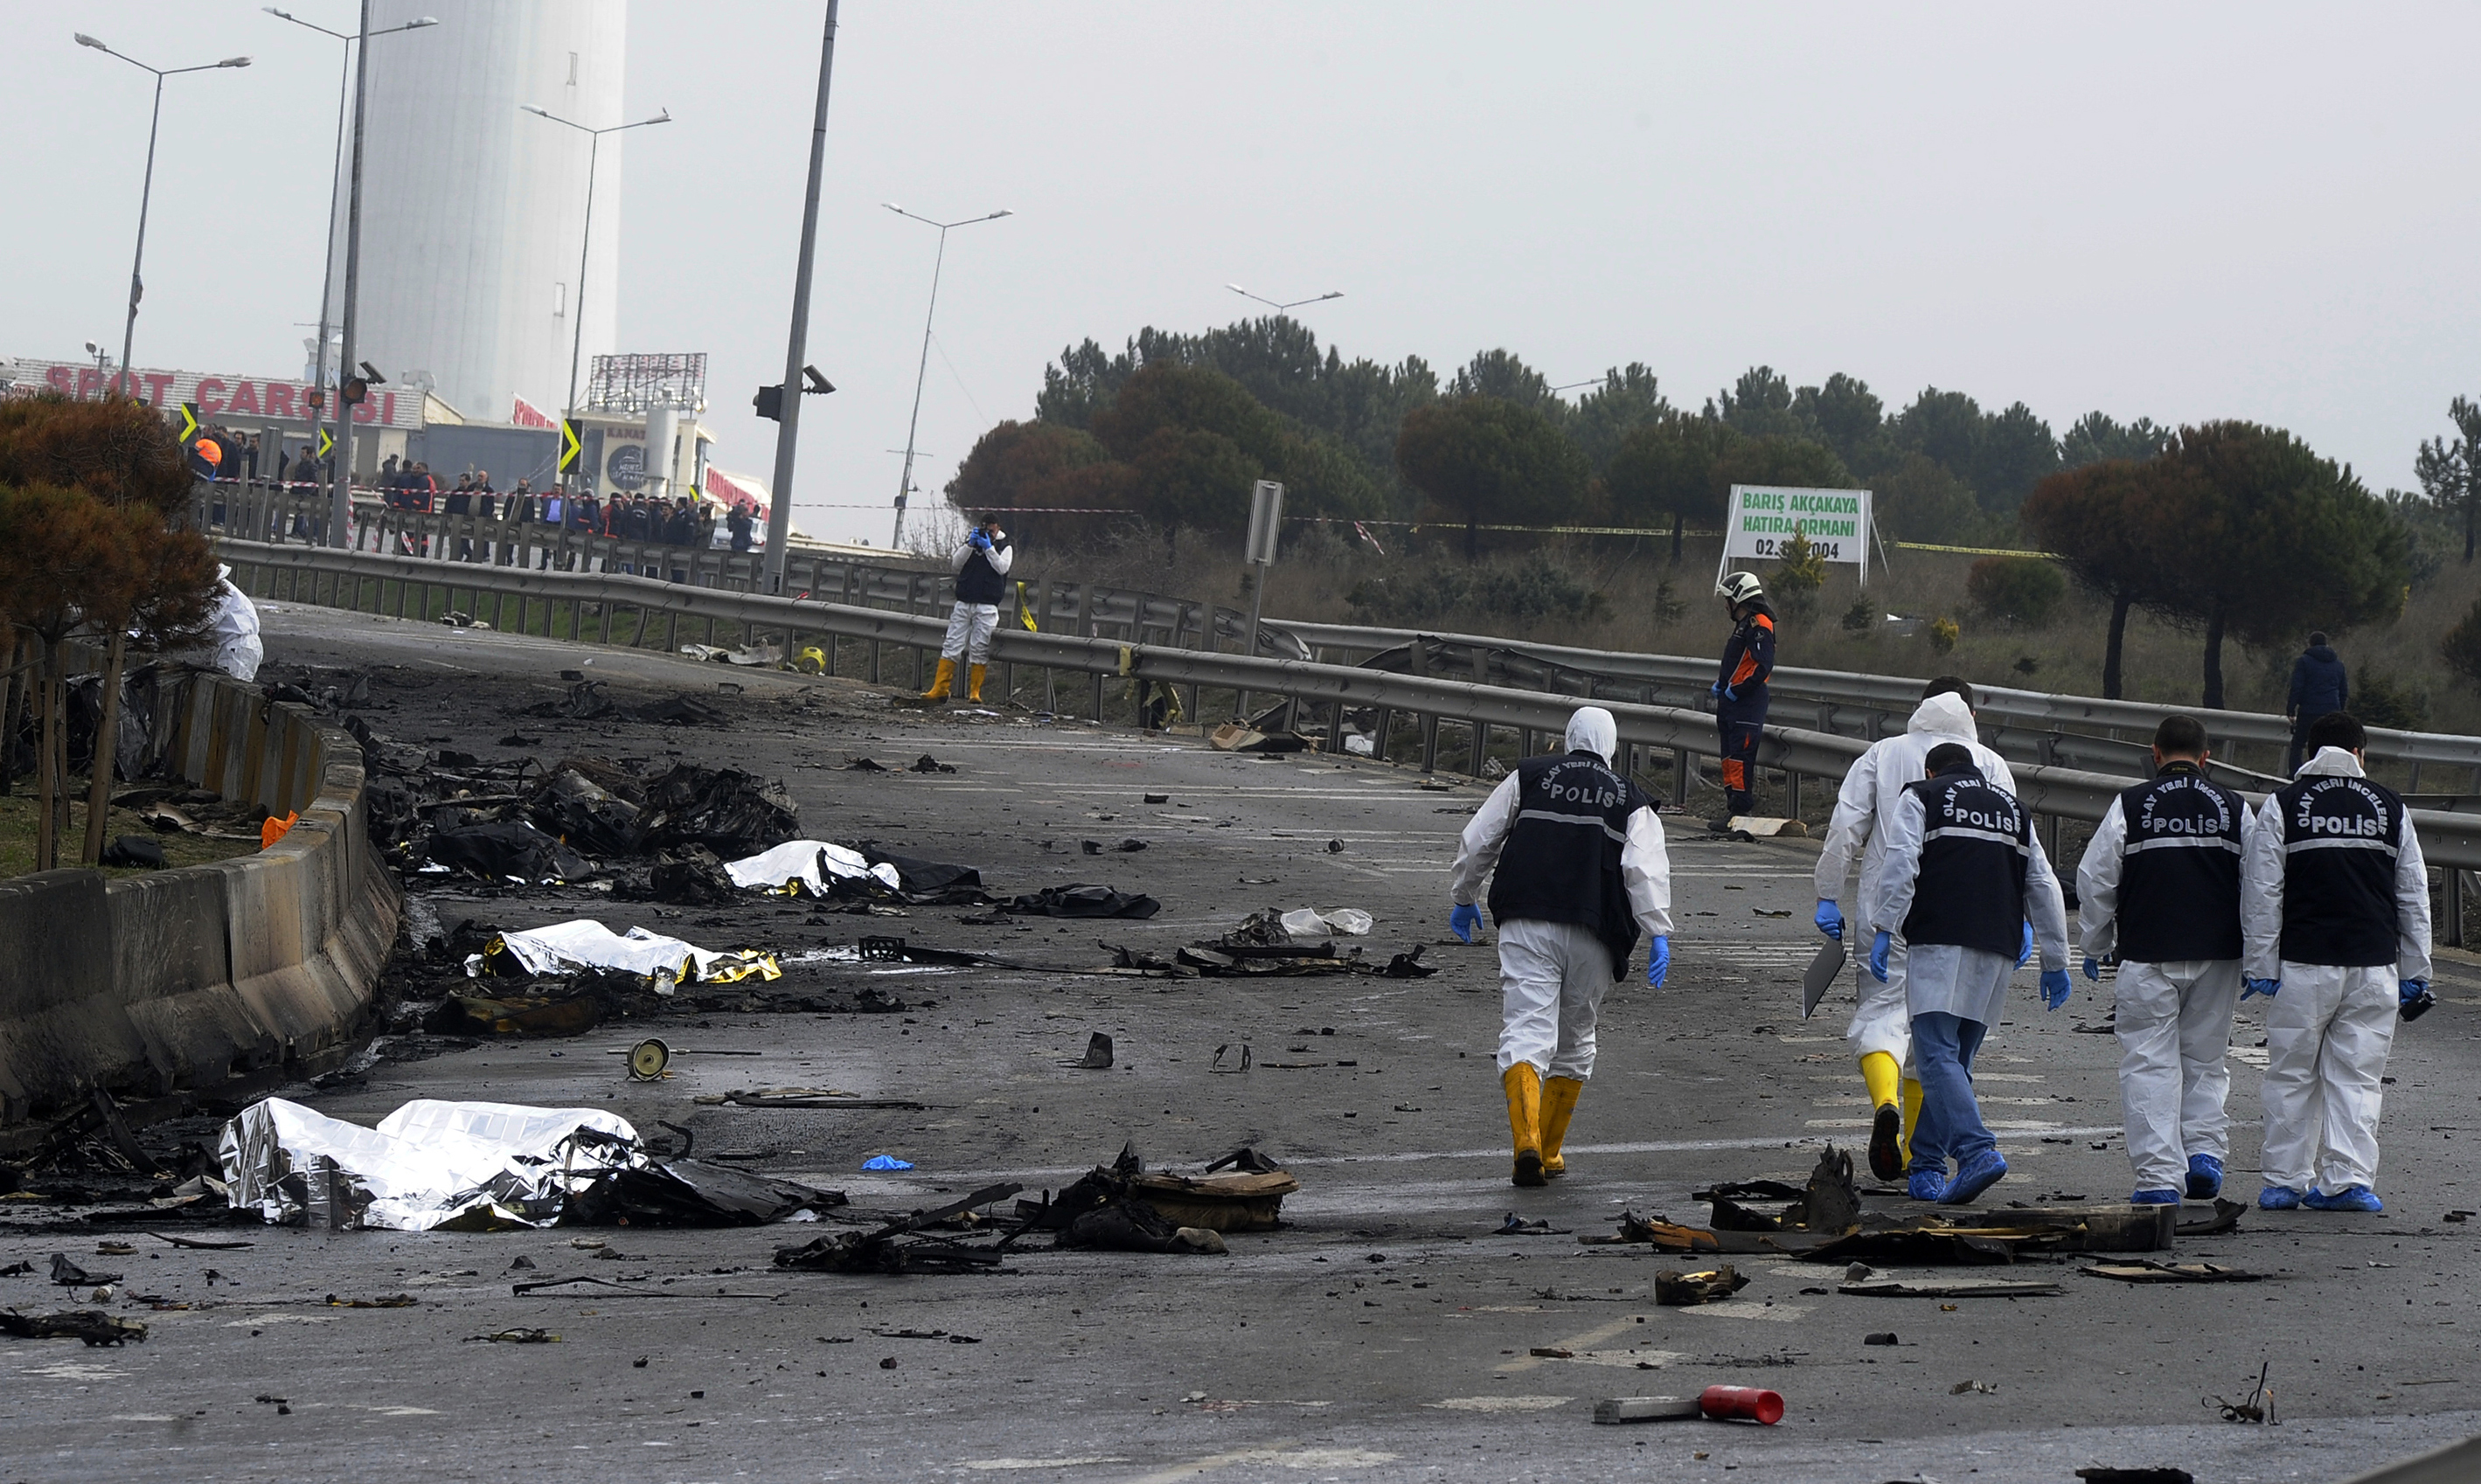 Russians killed in helicopter crash in Istanbul 19